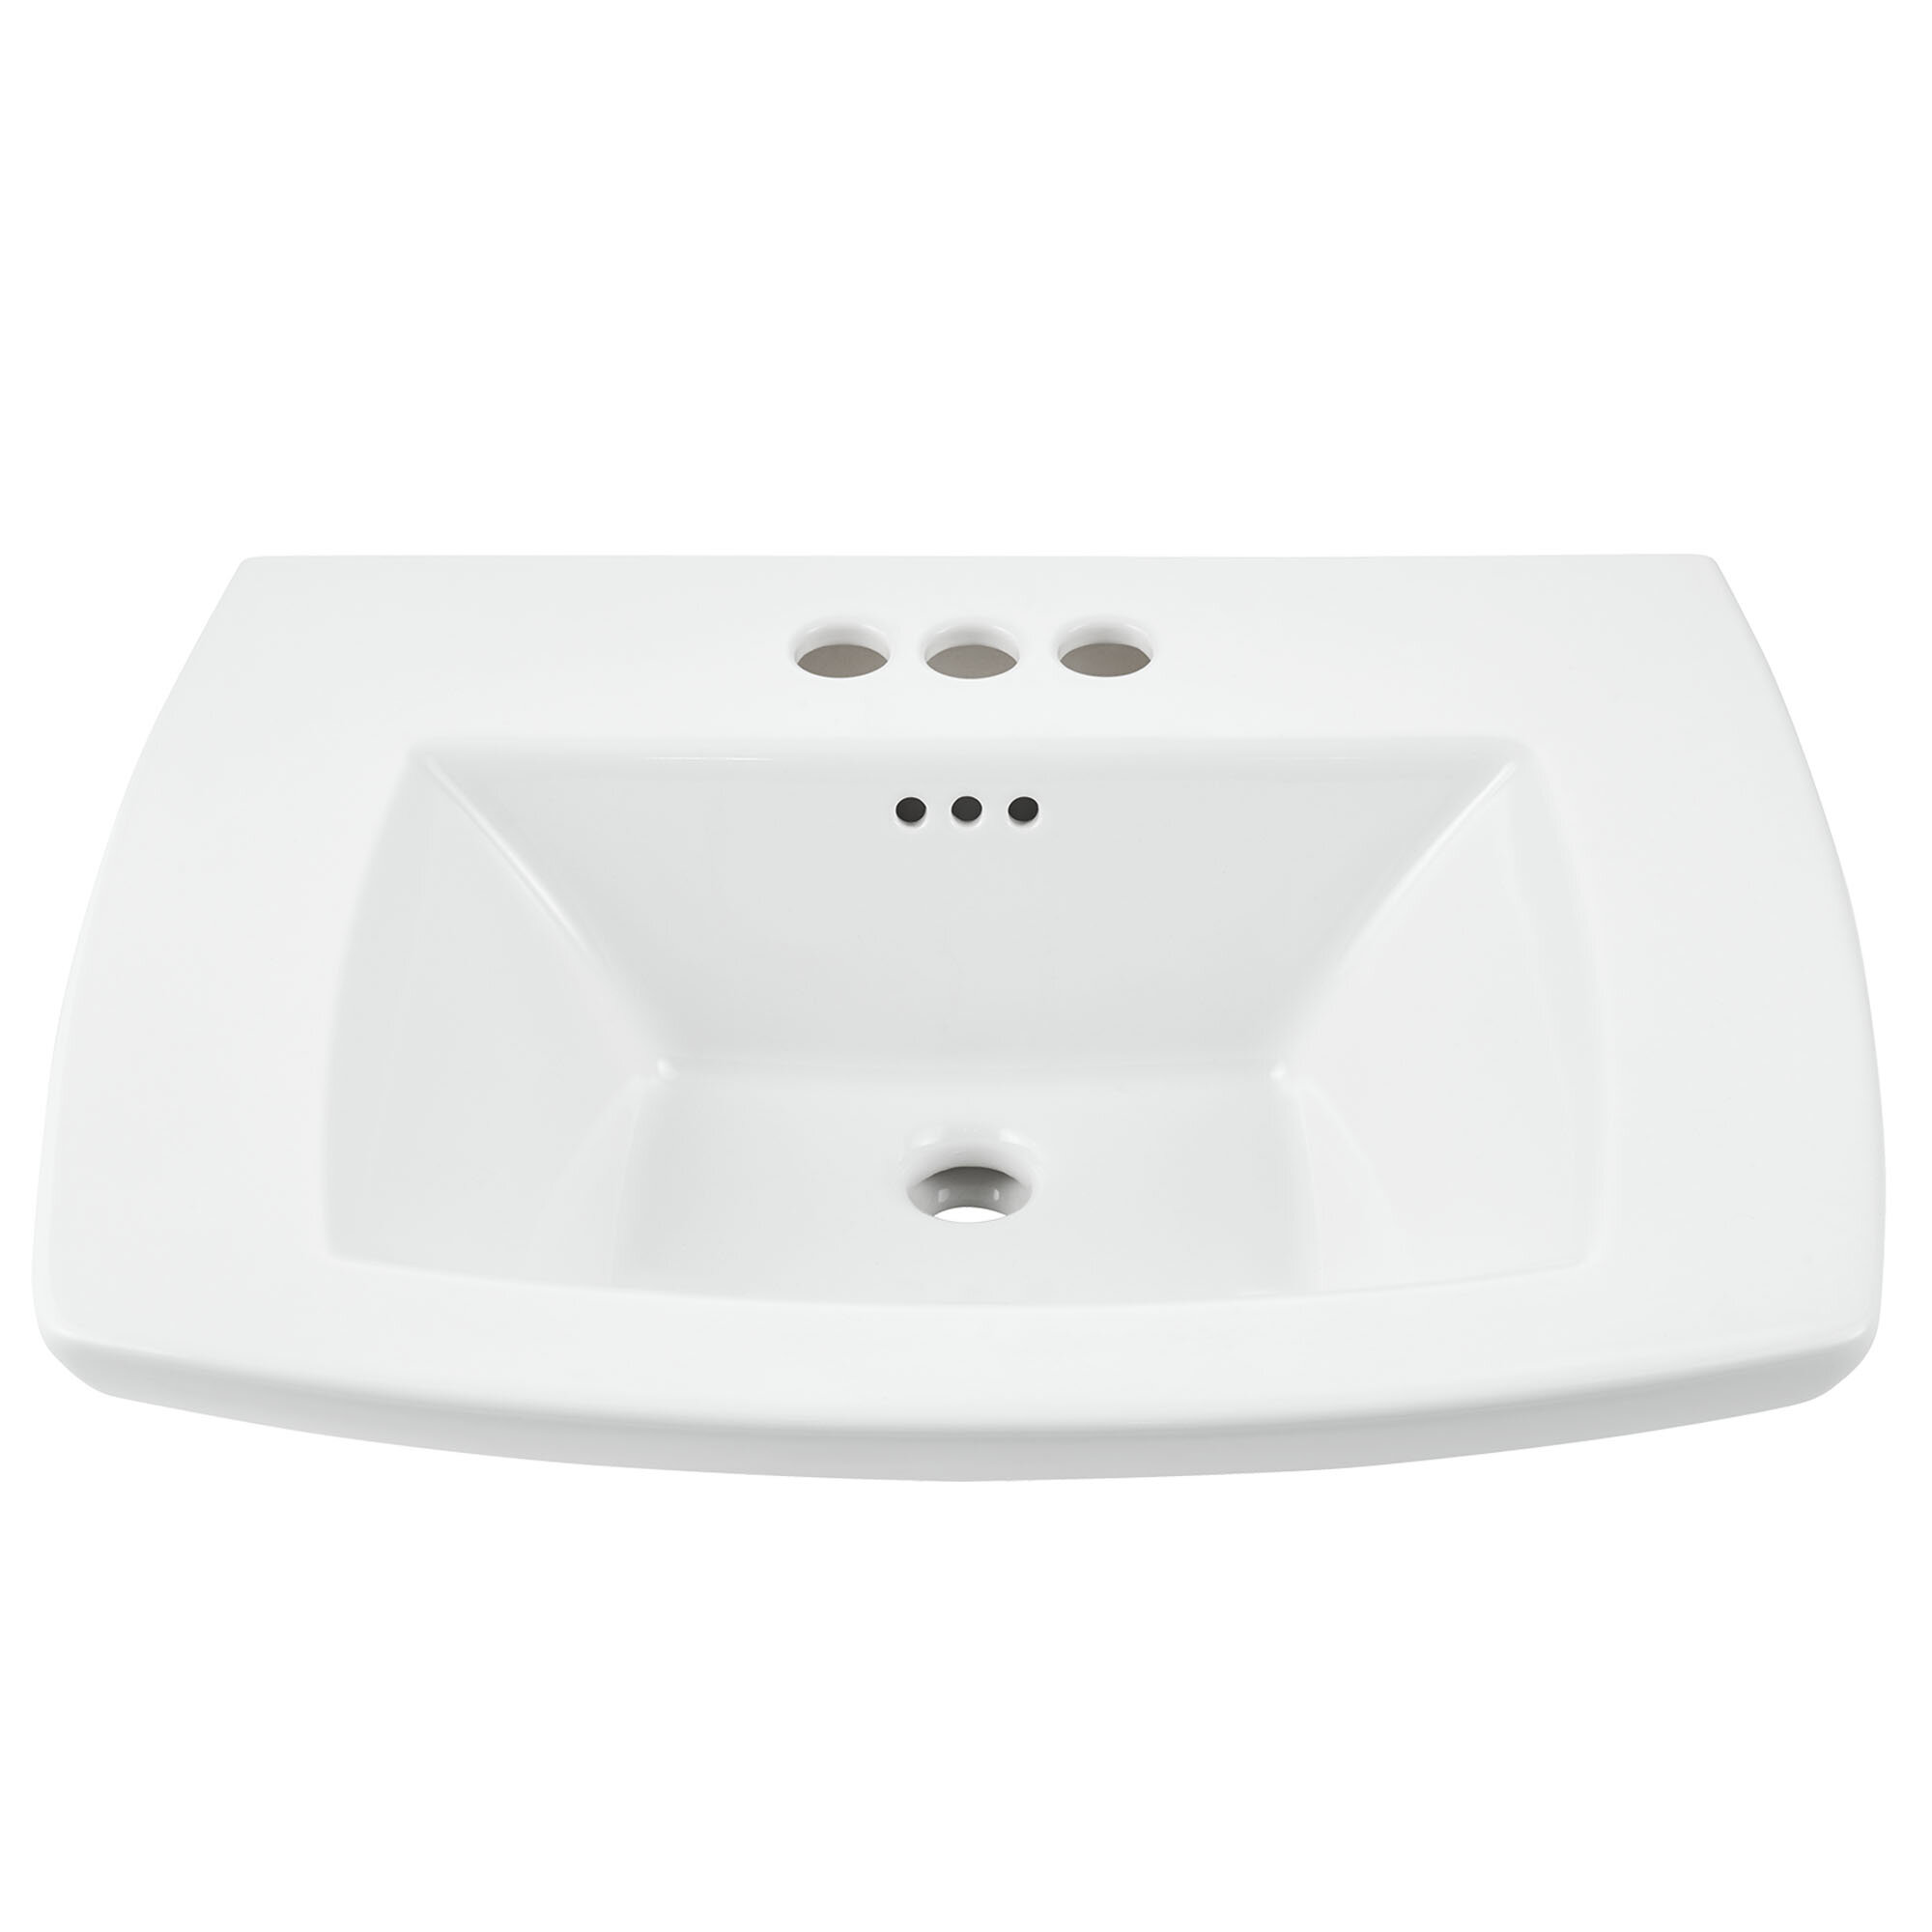 Edgemere White Ceramic Rectangular Console Bathroom Sink With Overflow Reviews